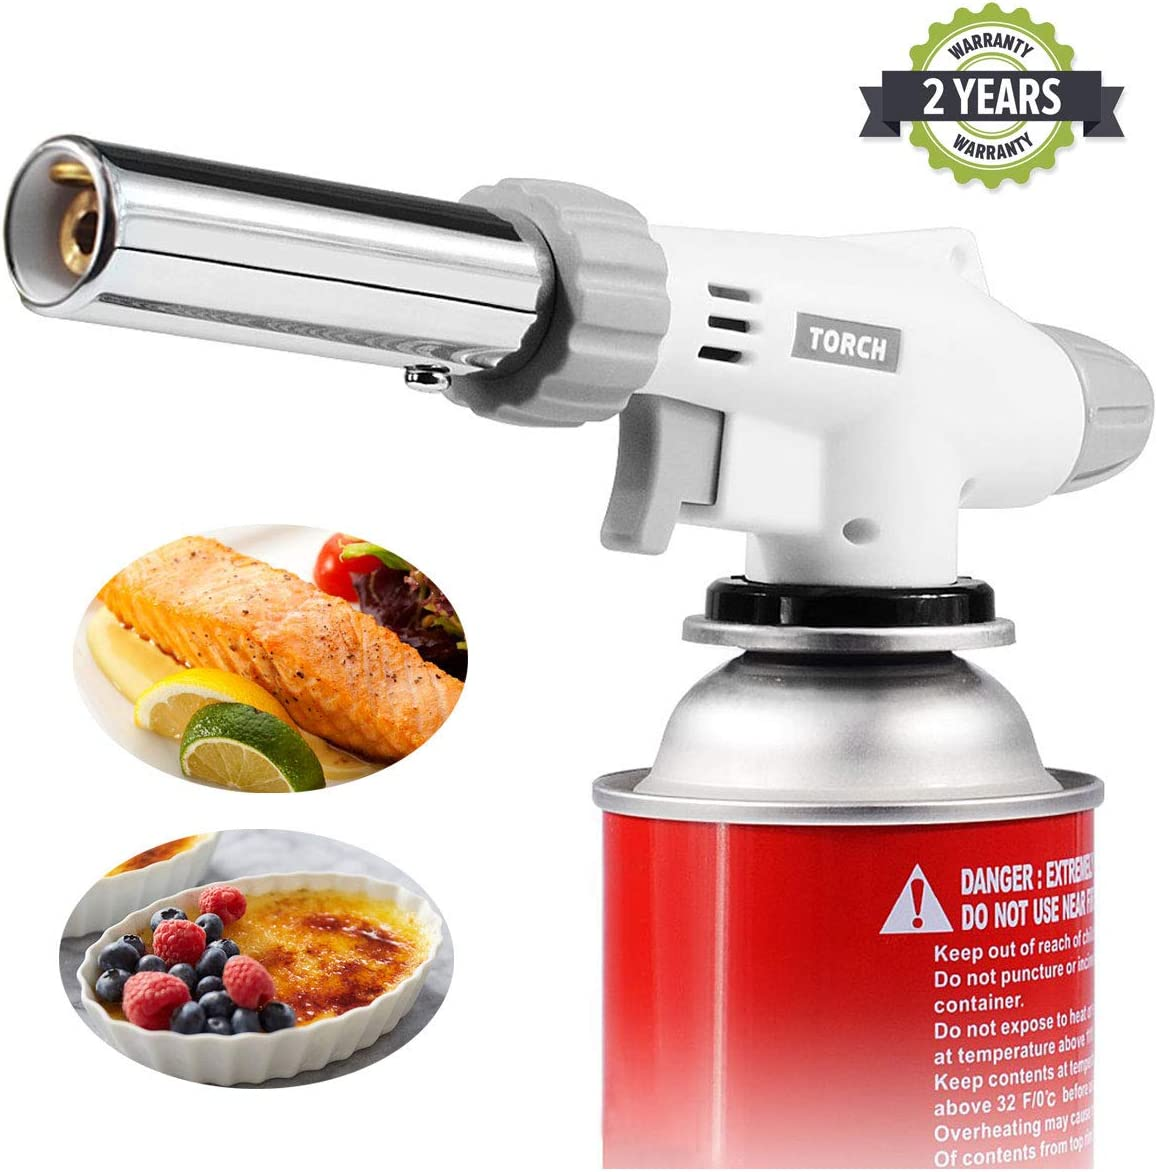 Butane Blow Torch, Adjustable Flame Kitchen Chef Culinary Torch, Cooking Crème Brulee Torch Lighter